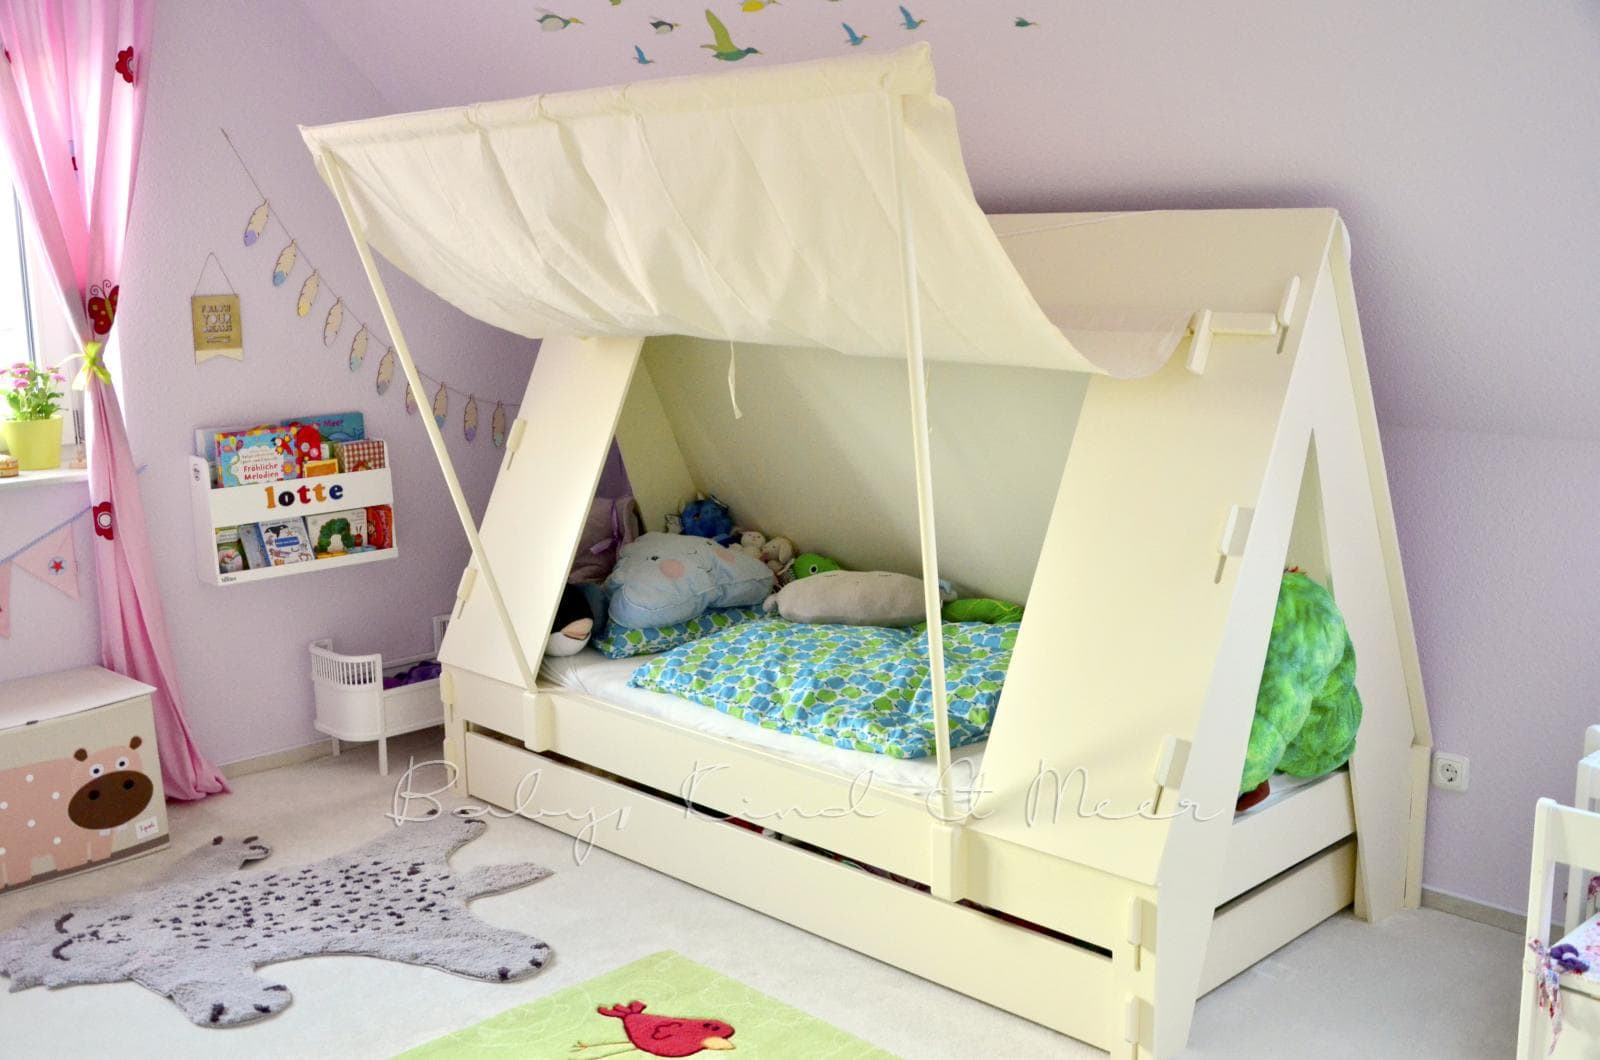 unsere neuen kinderzimmer interior familienleben baby kind und meer. Black Bedroom Furniture Sets. Home Design Ideas